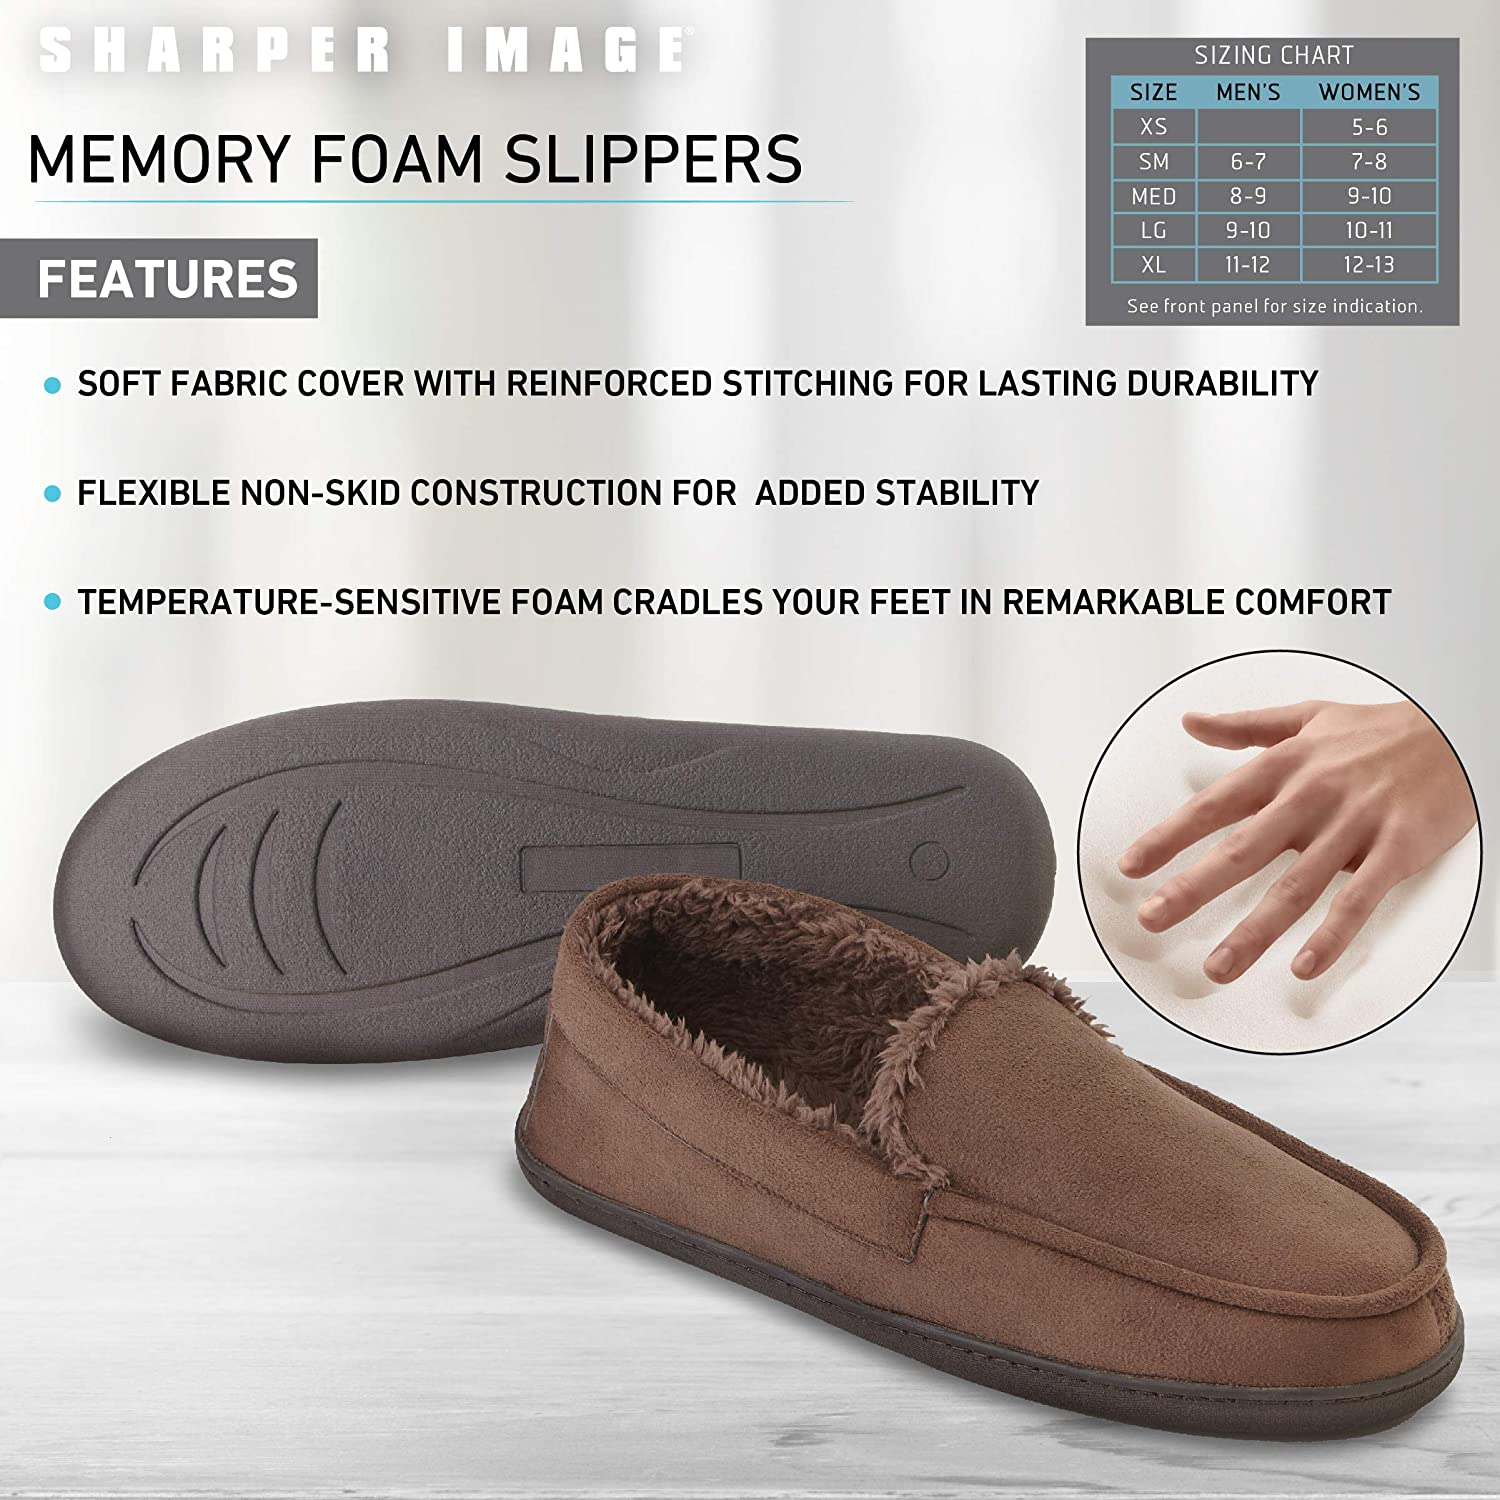 Unisex Style for Women and Men SHARPER IMAGE Comfort Memory Foam Moccasin Slippers with Faux Micro Suede and Faux Fur Sherpa Lining